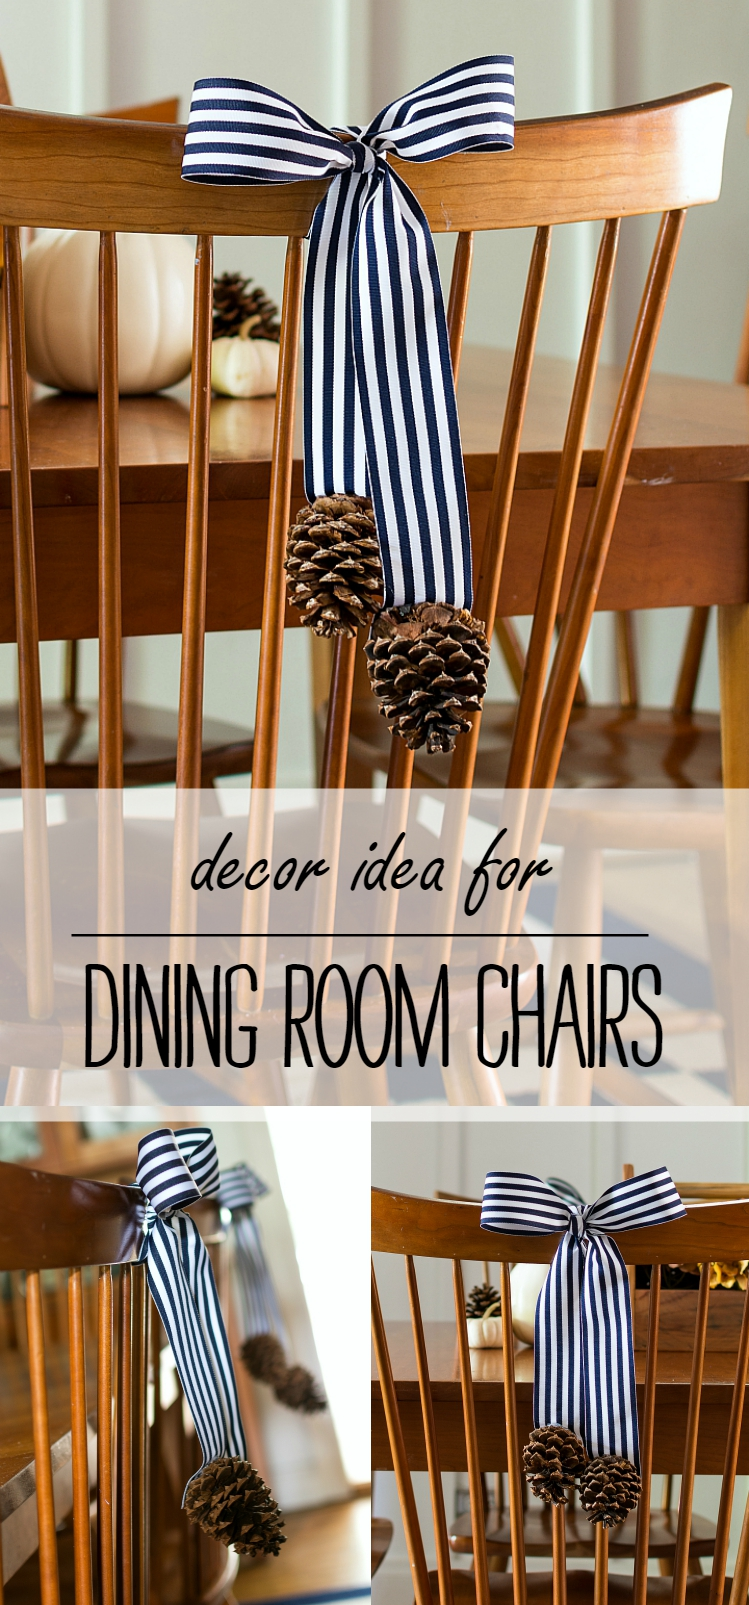 Decorate Back of Dining Chair With Bow and Pine Cones